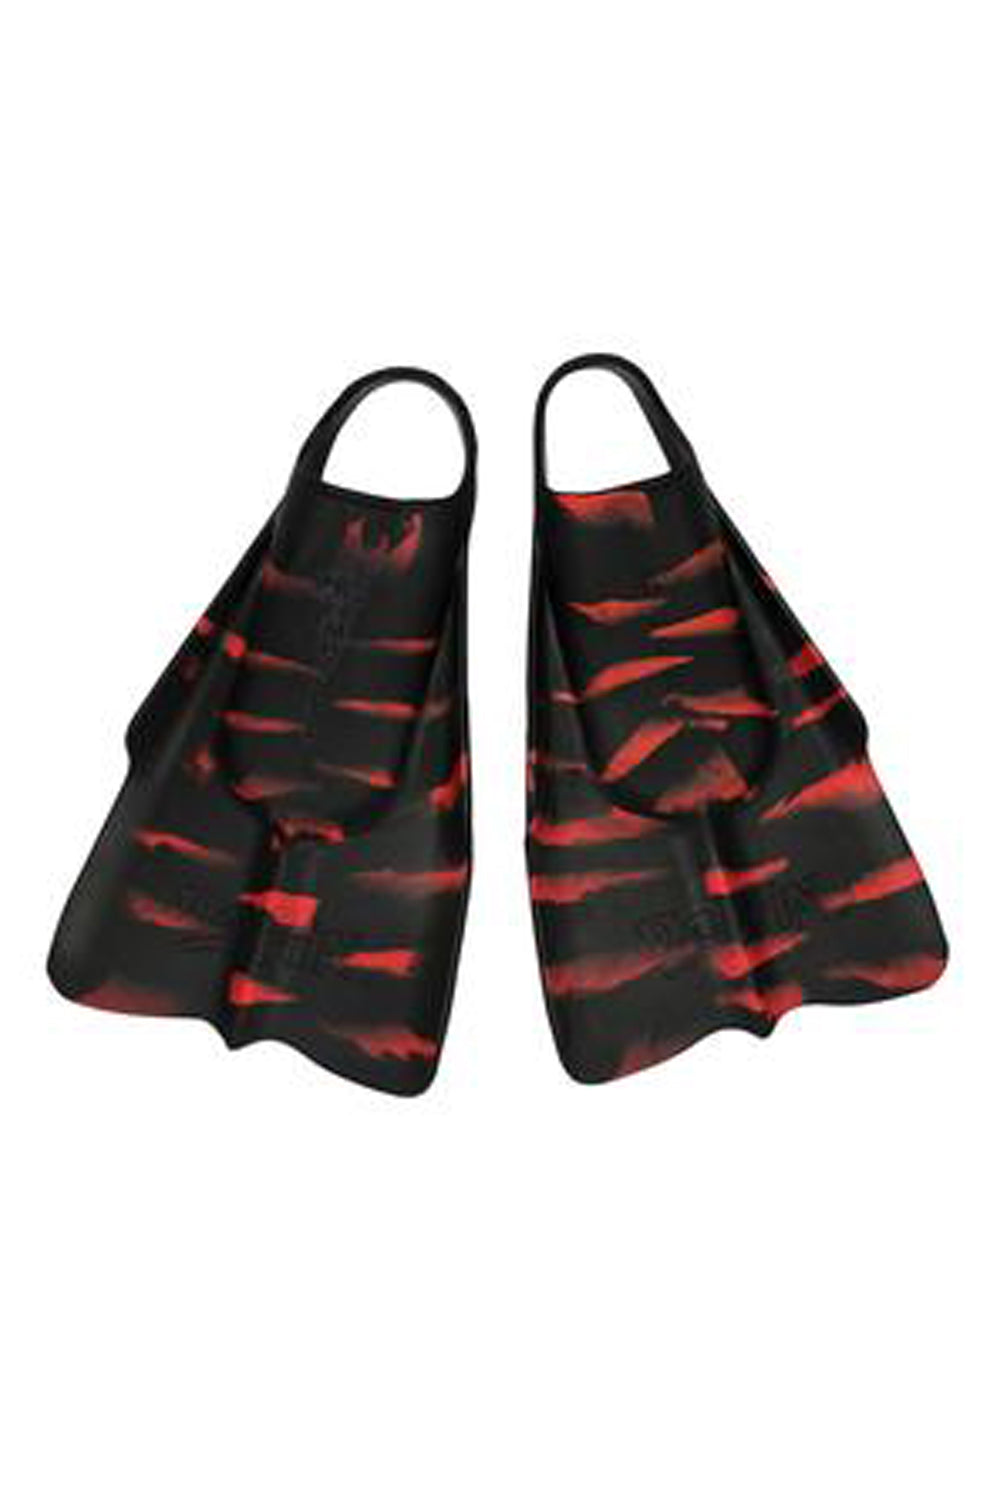 Da Fin Swimfins Flippers - Zak Noyle Black / Red